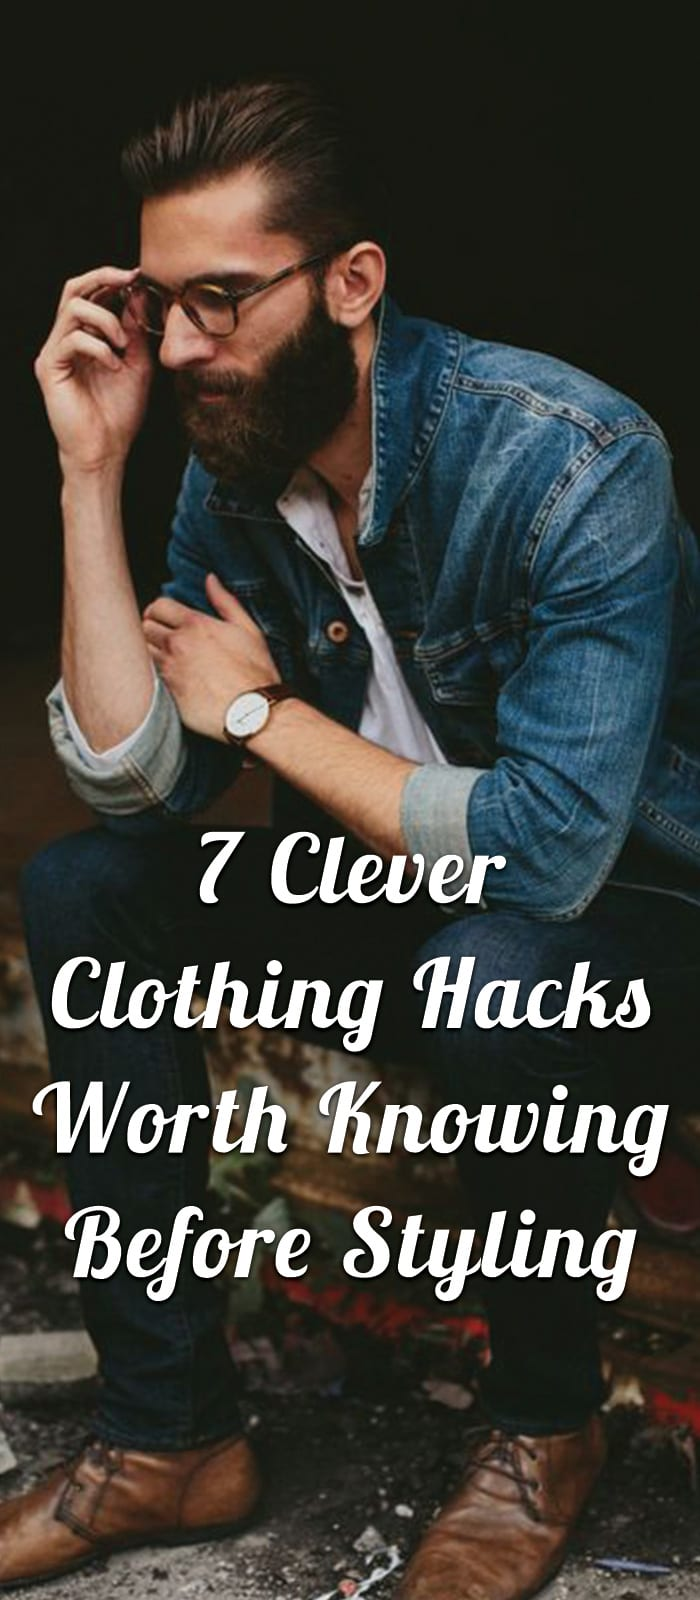 7-Clever-Clothing-Hacks-Worth-Knowing-Before-Styling